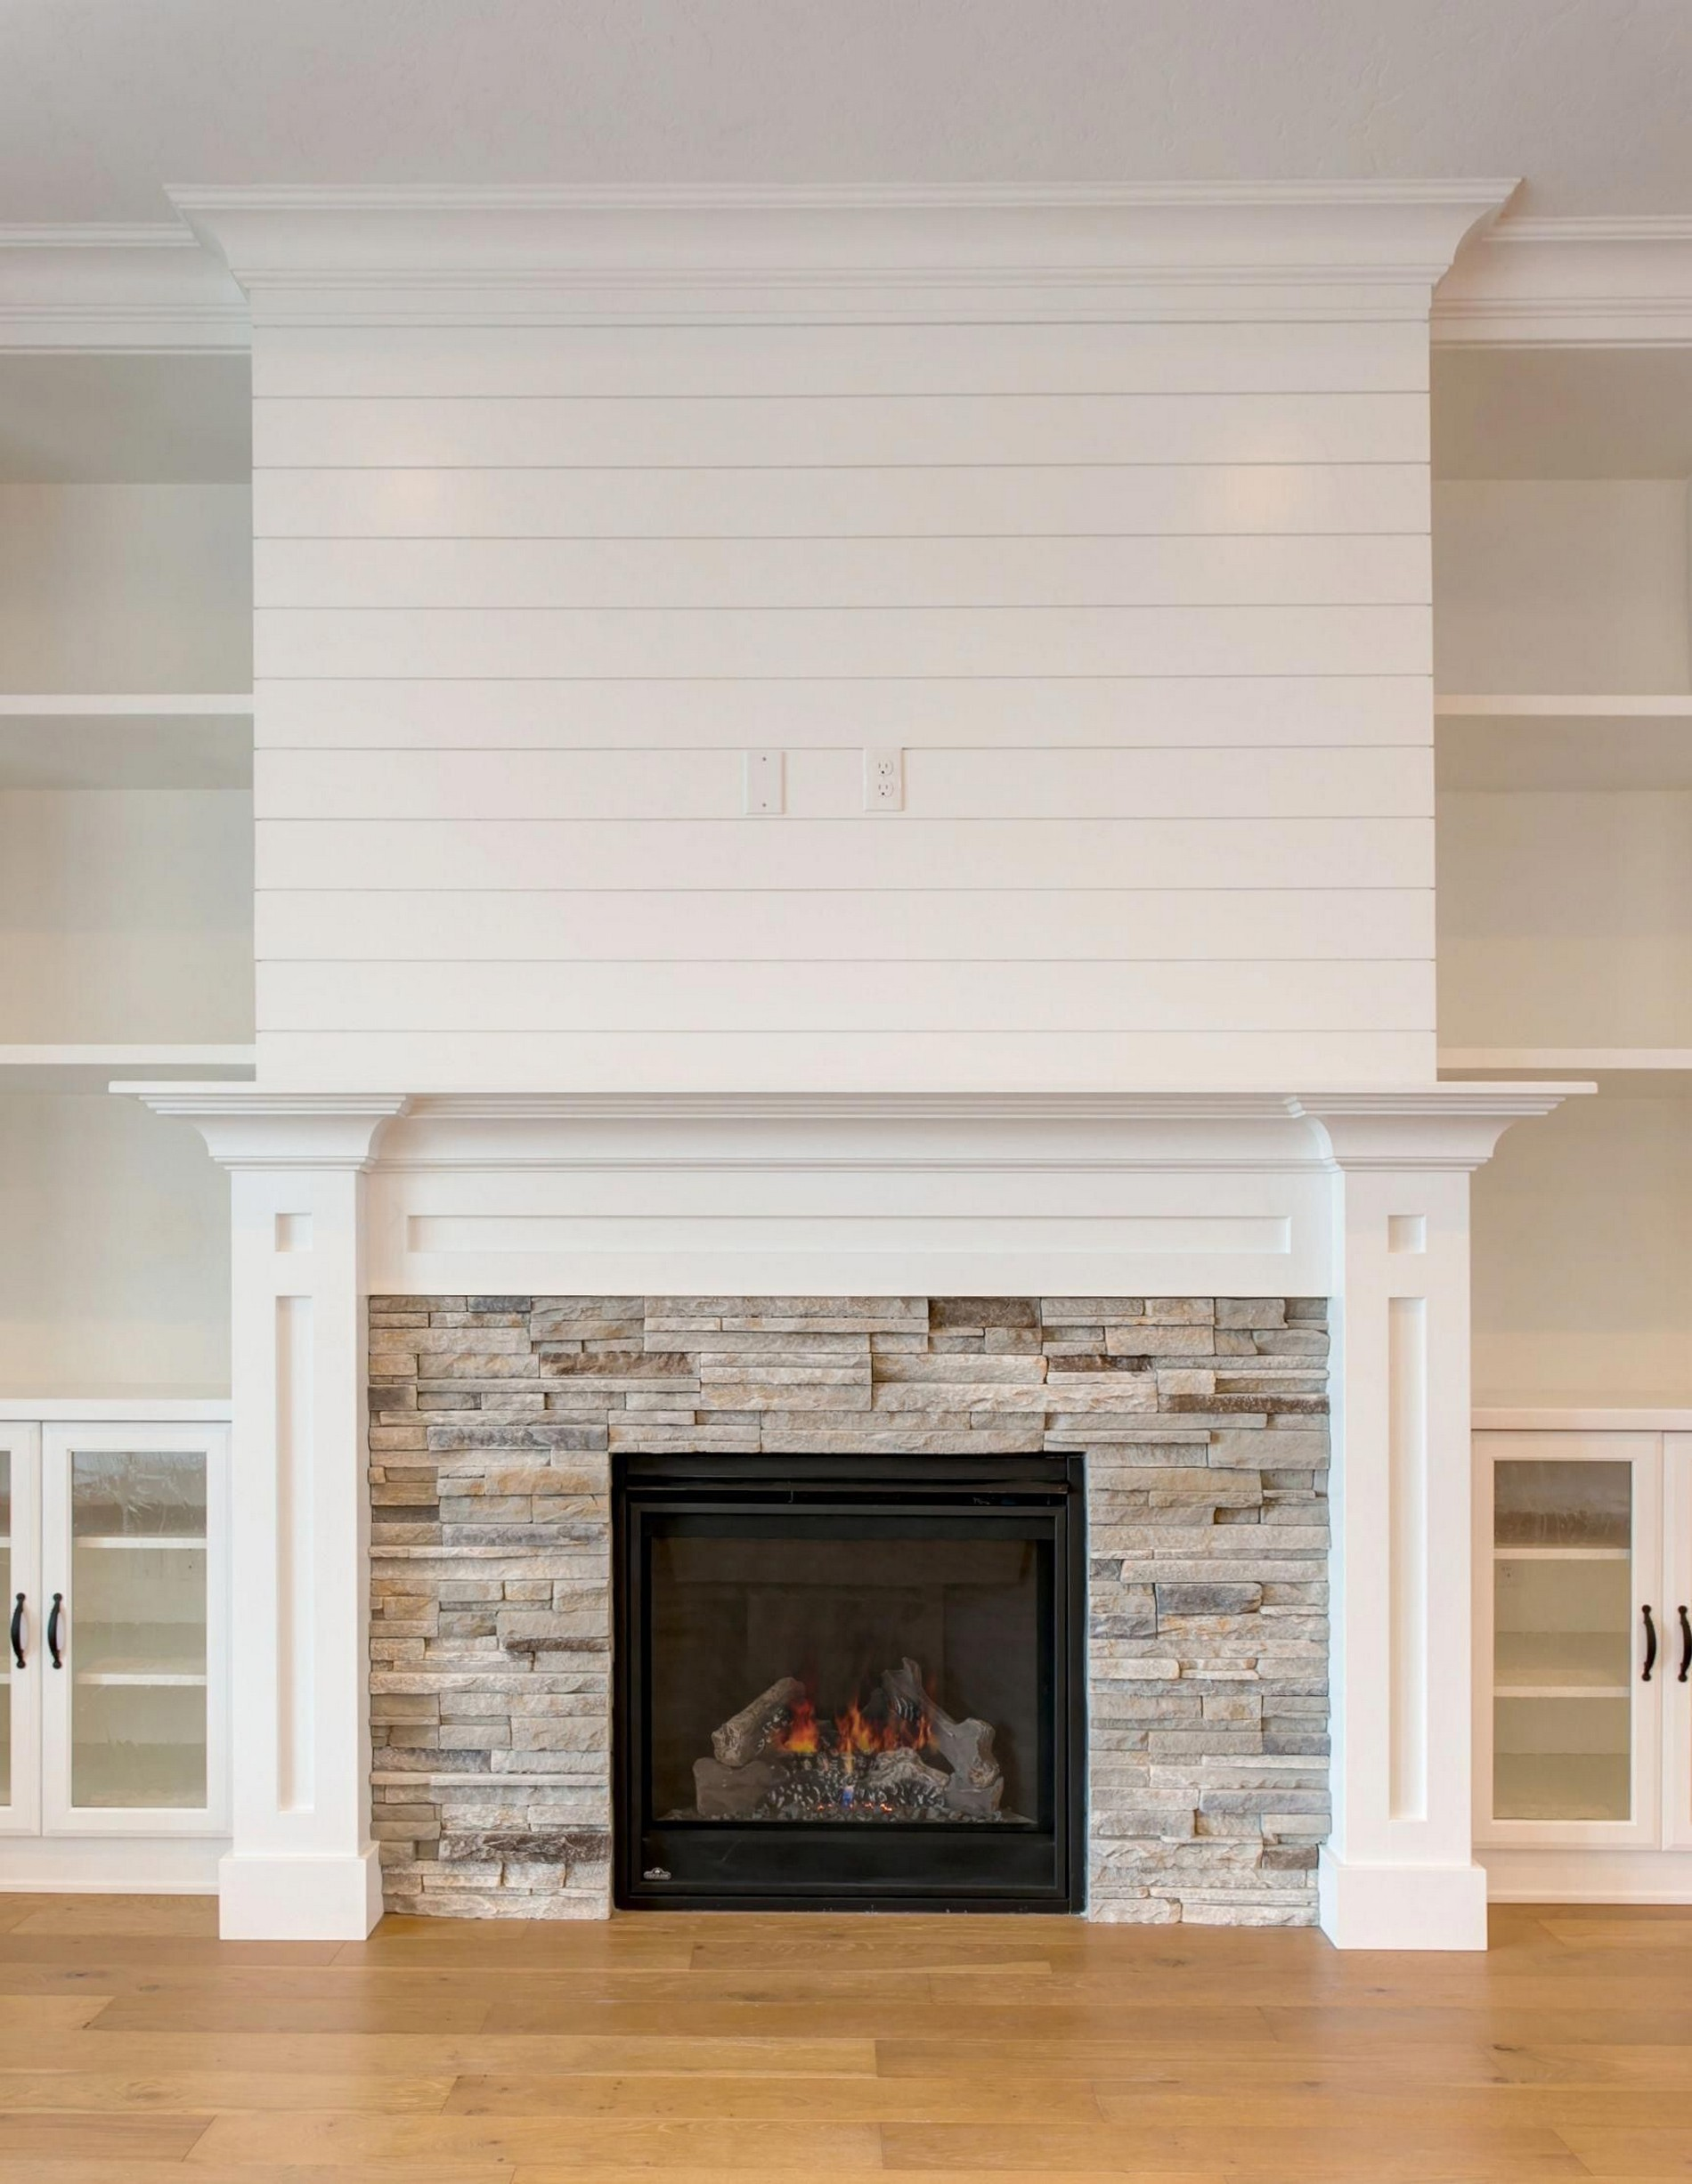 76 Stone Fireplaces The Hearth Is The Heart of The Home 17